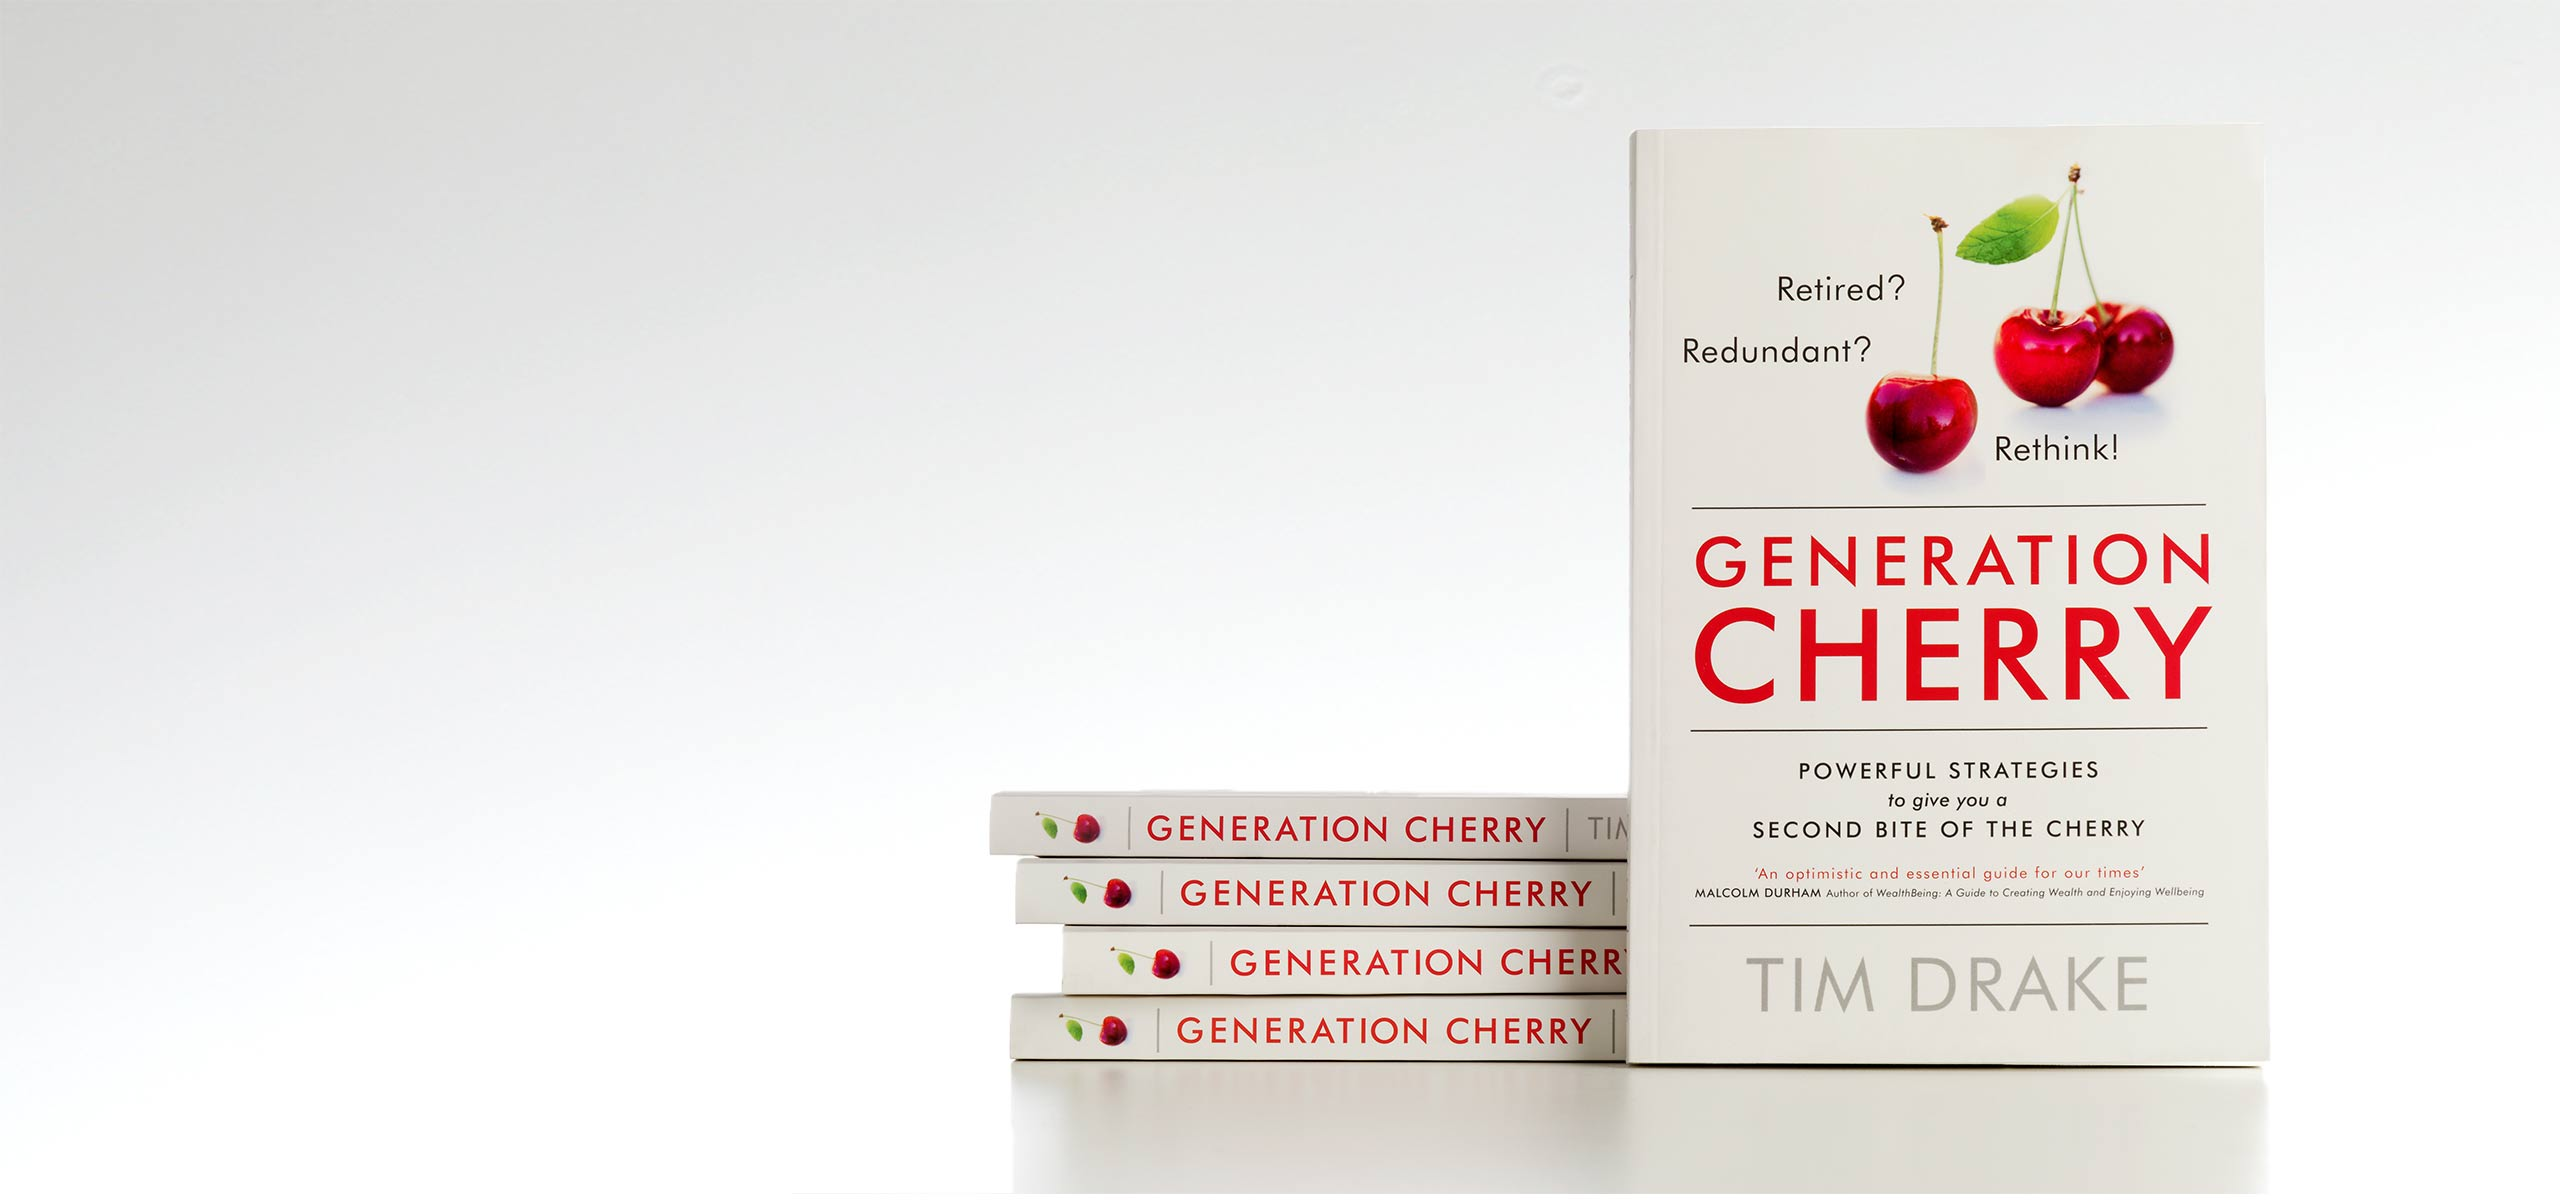 Generation Cherry by Tim Drake